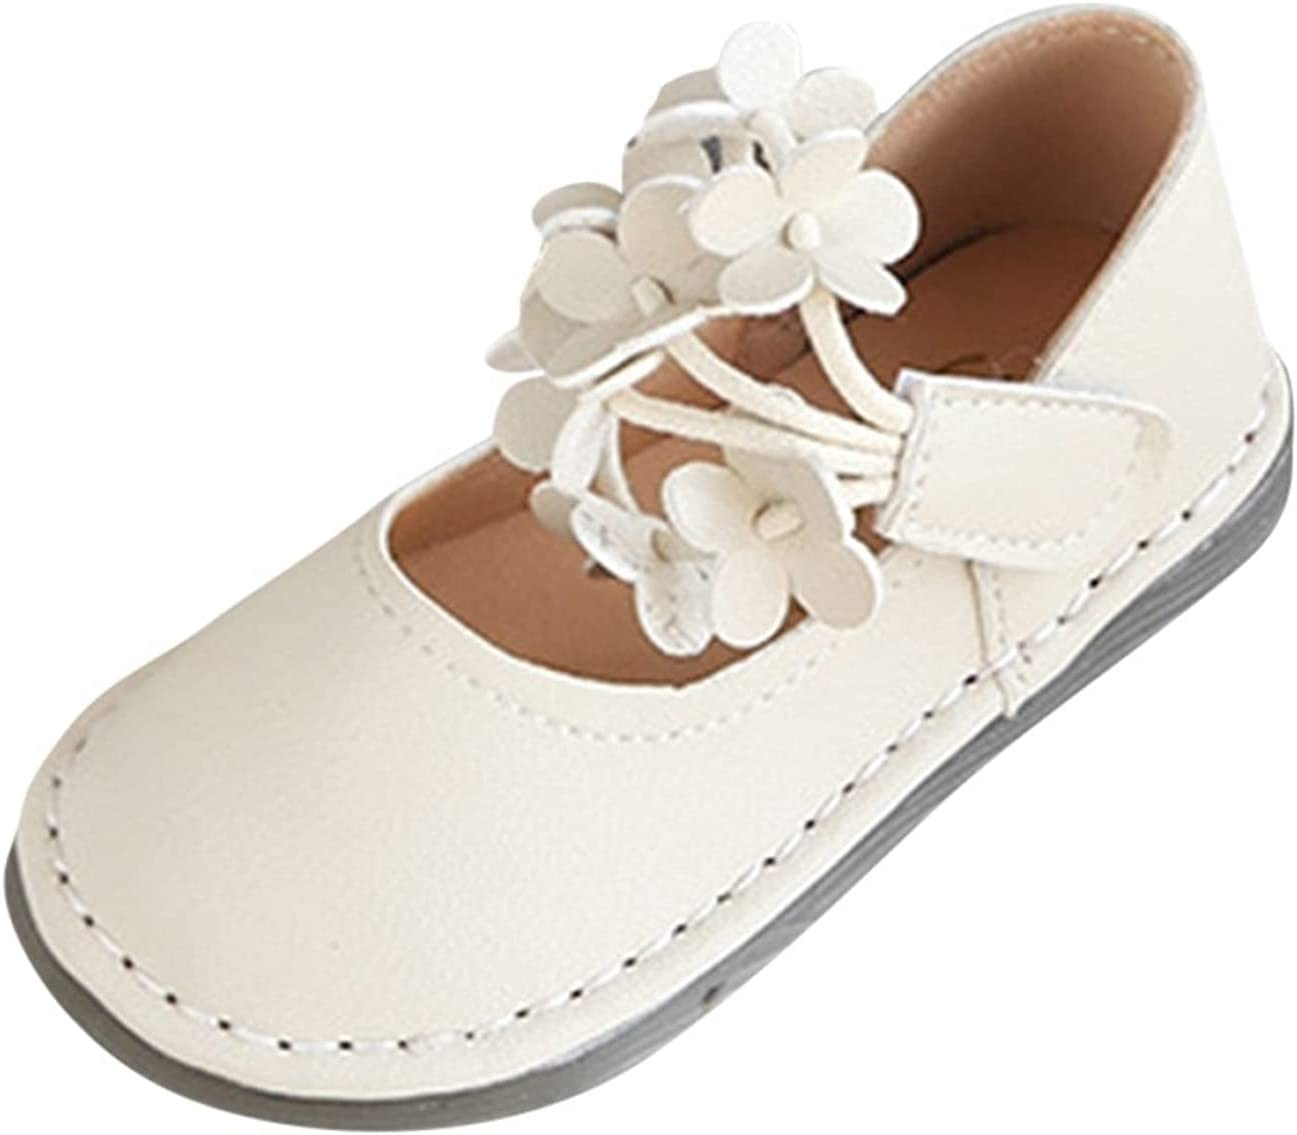 Toddler Infant Kids Baby Max 58% OFF Girls Shallow Princess Limited price sale Flat Shoe Flower